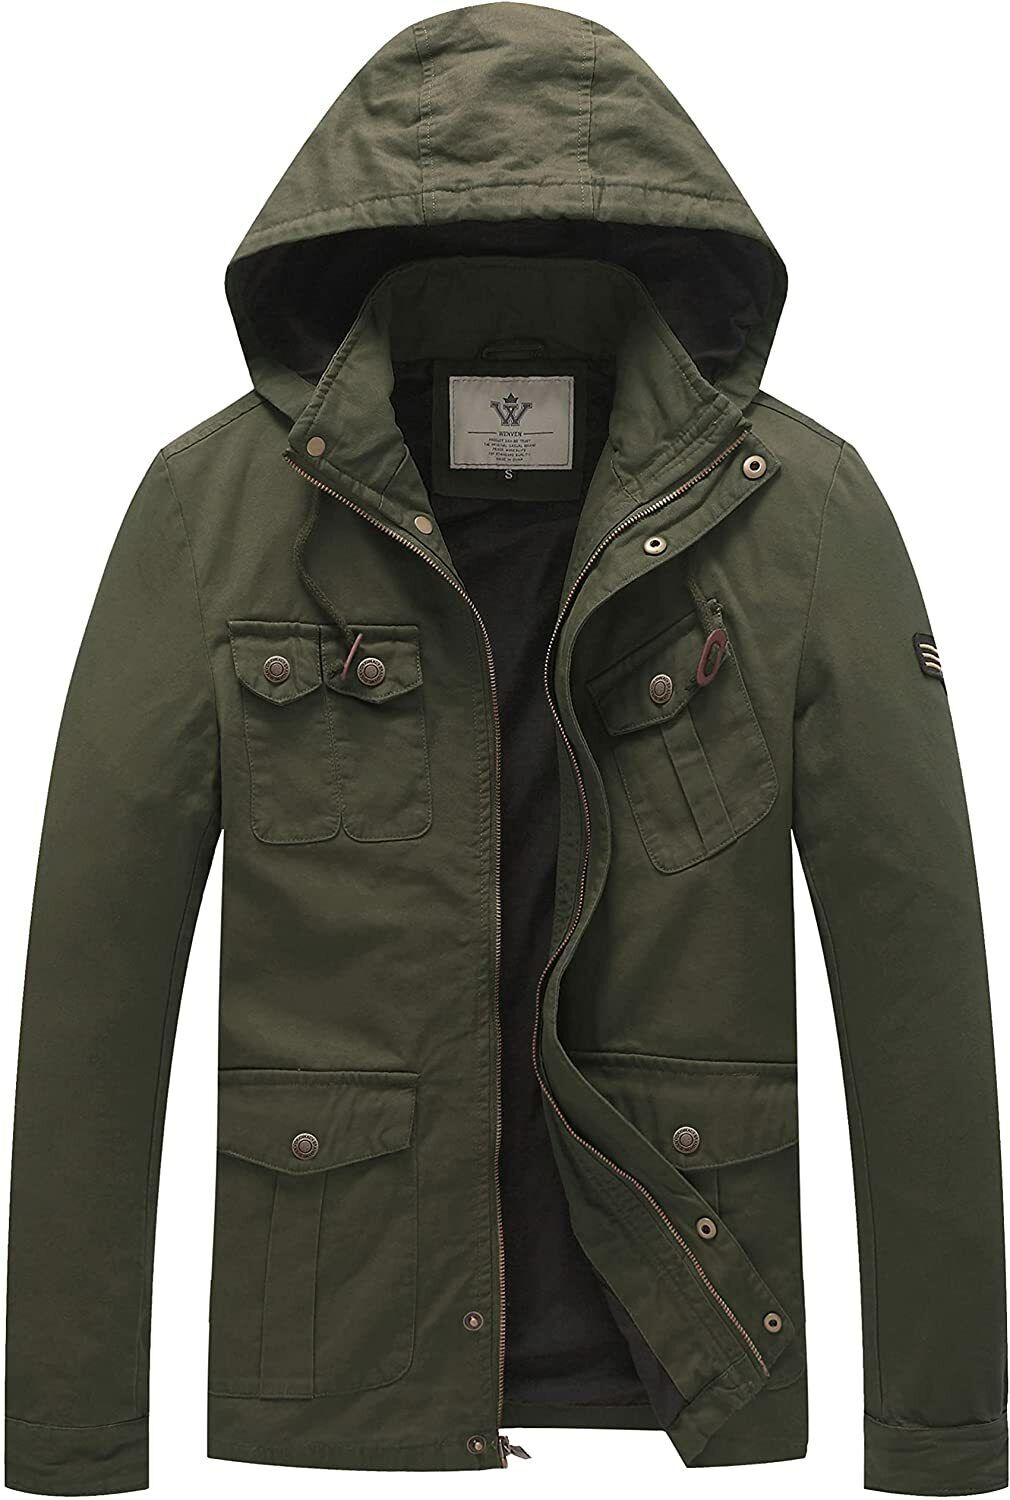 WenVen Men's Fall Casual Outerwear Lightweight Cotton Military Hooded Jackets